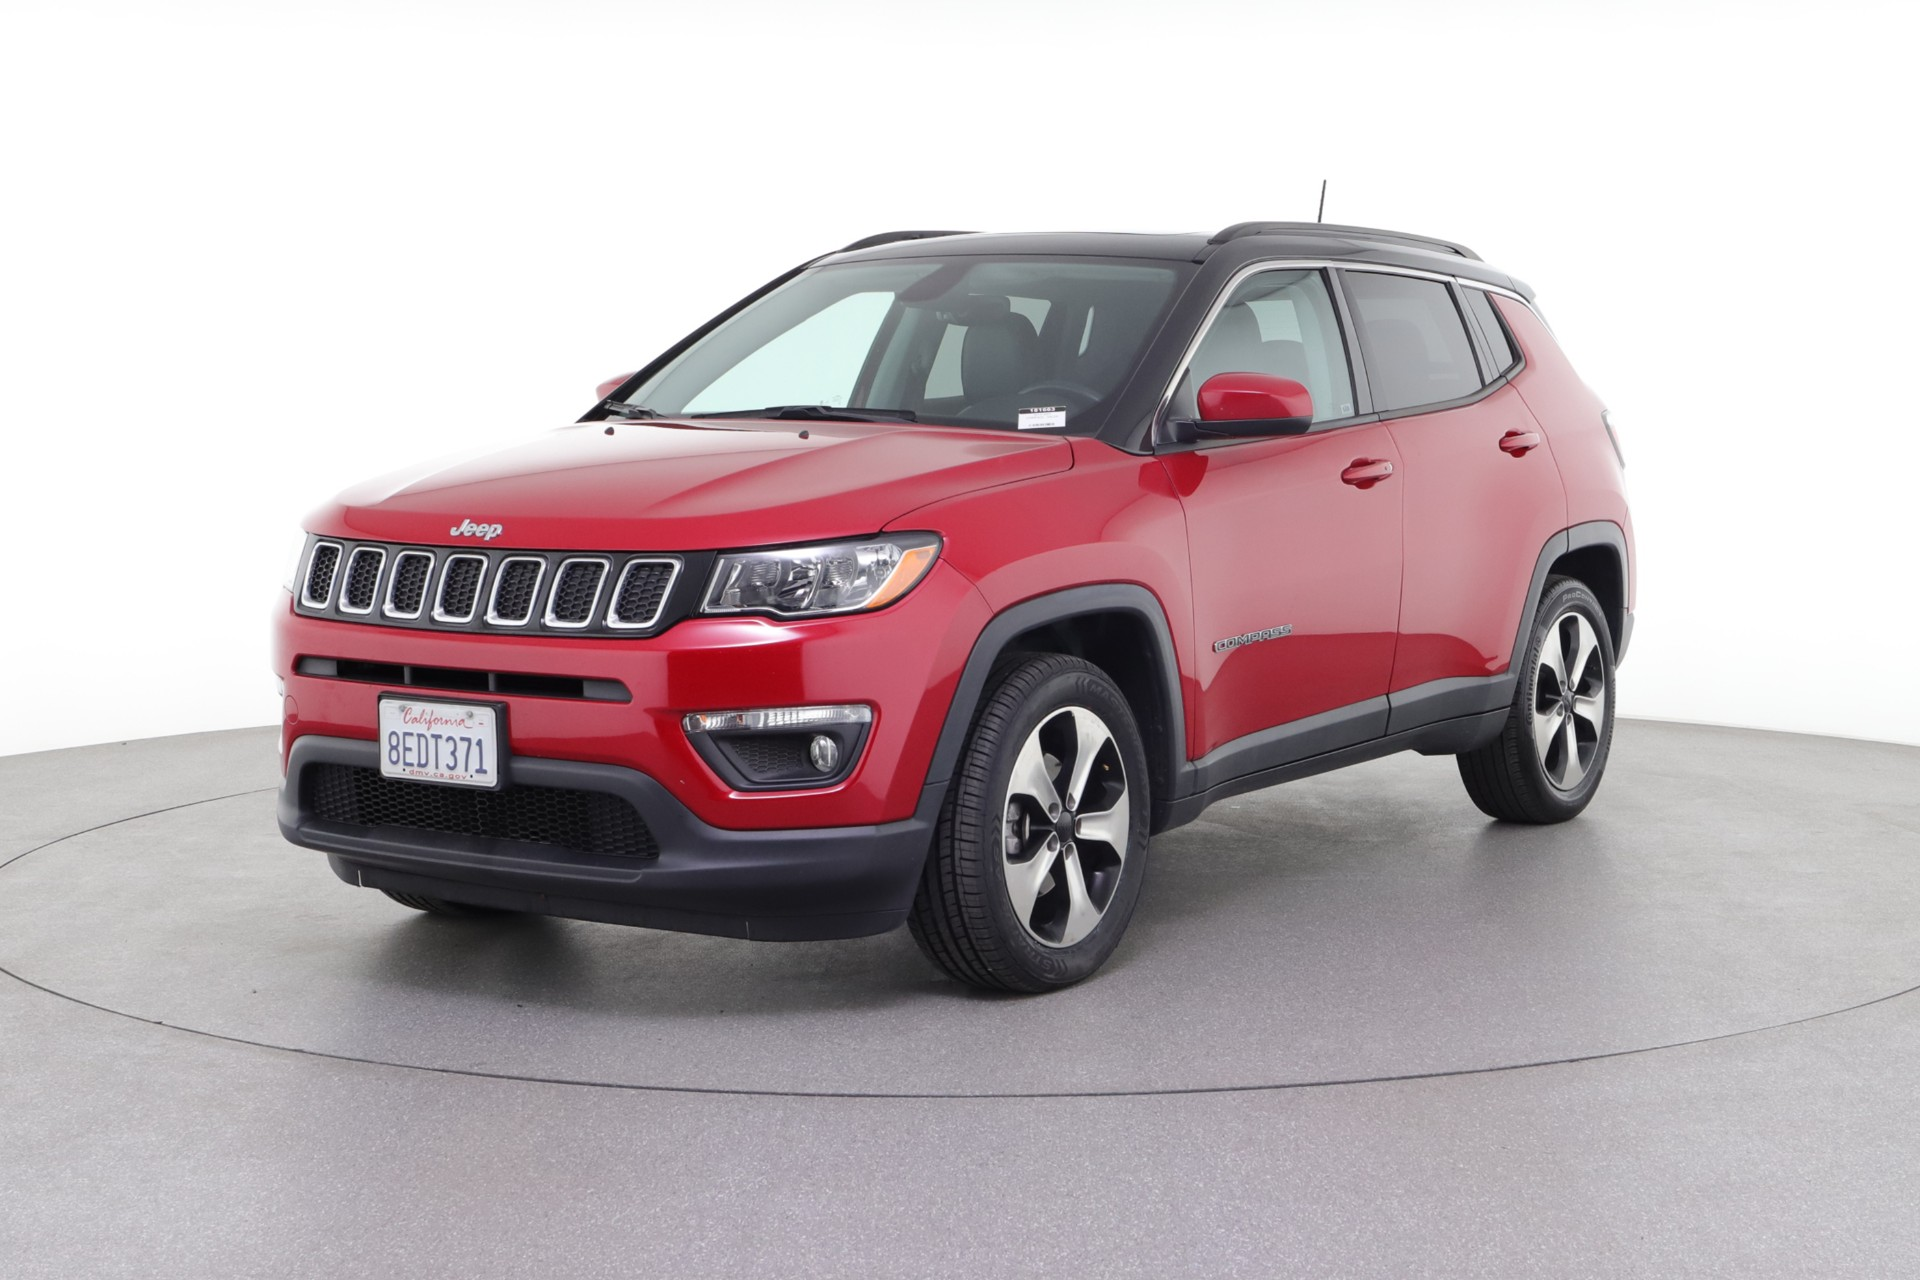 2018 Jeep Compass Latitude (from $23,950)